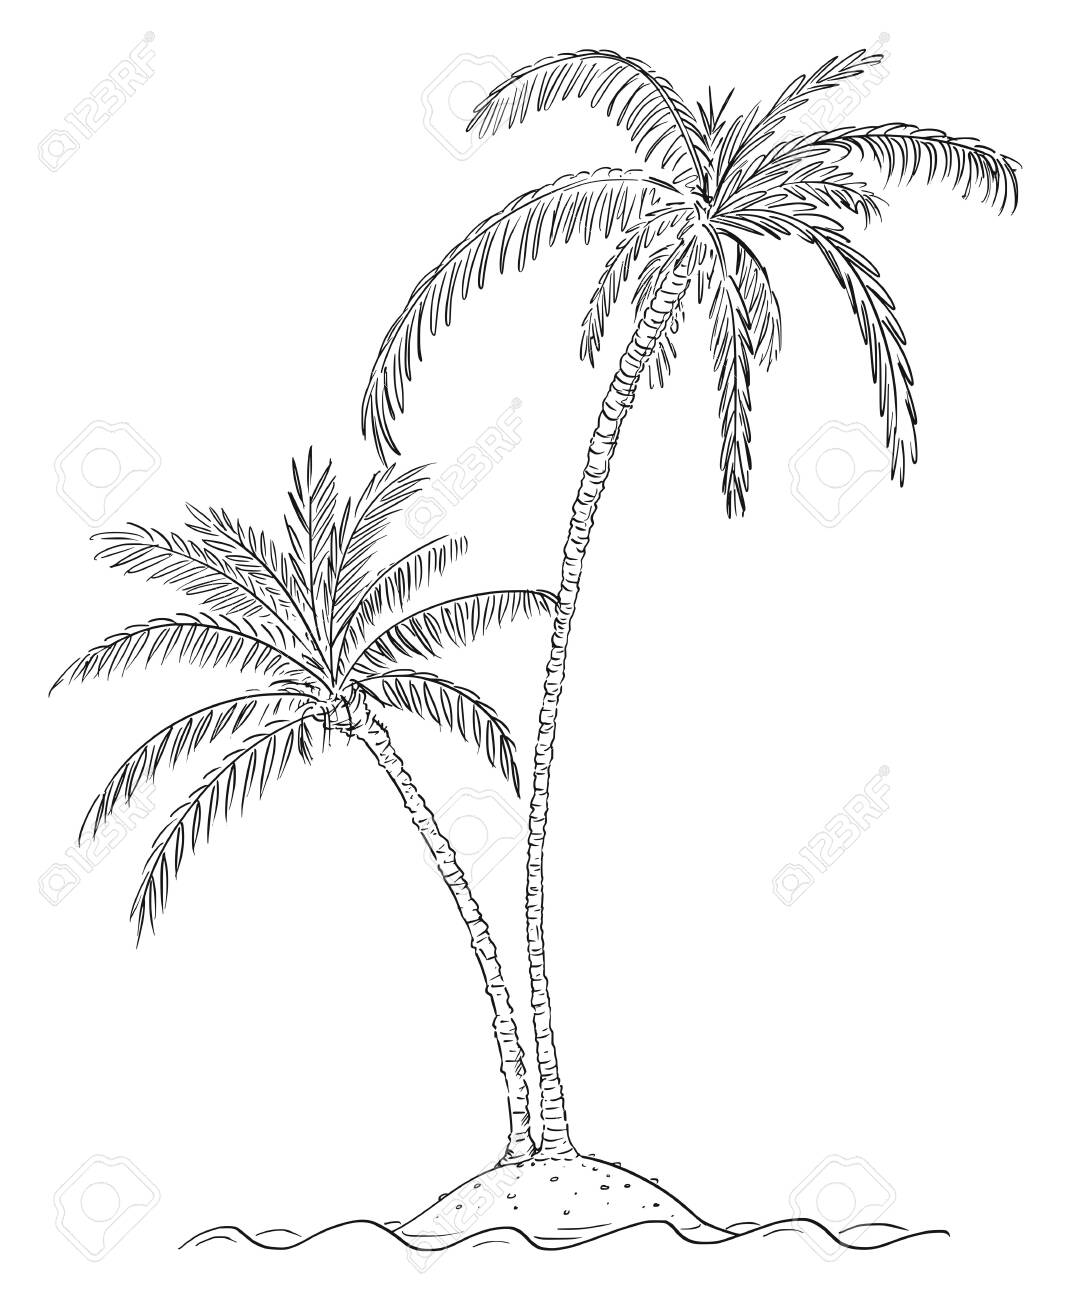 Vector Cartoon Illustration Or Drawing Of Two Palm Trees Growing Royalty Free Cliparts Vectors And Stock Illustration Image 124819980